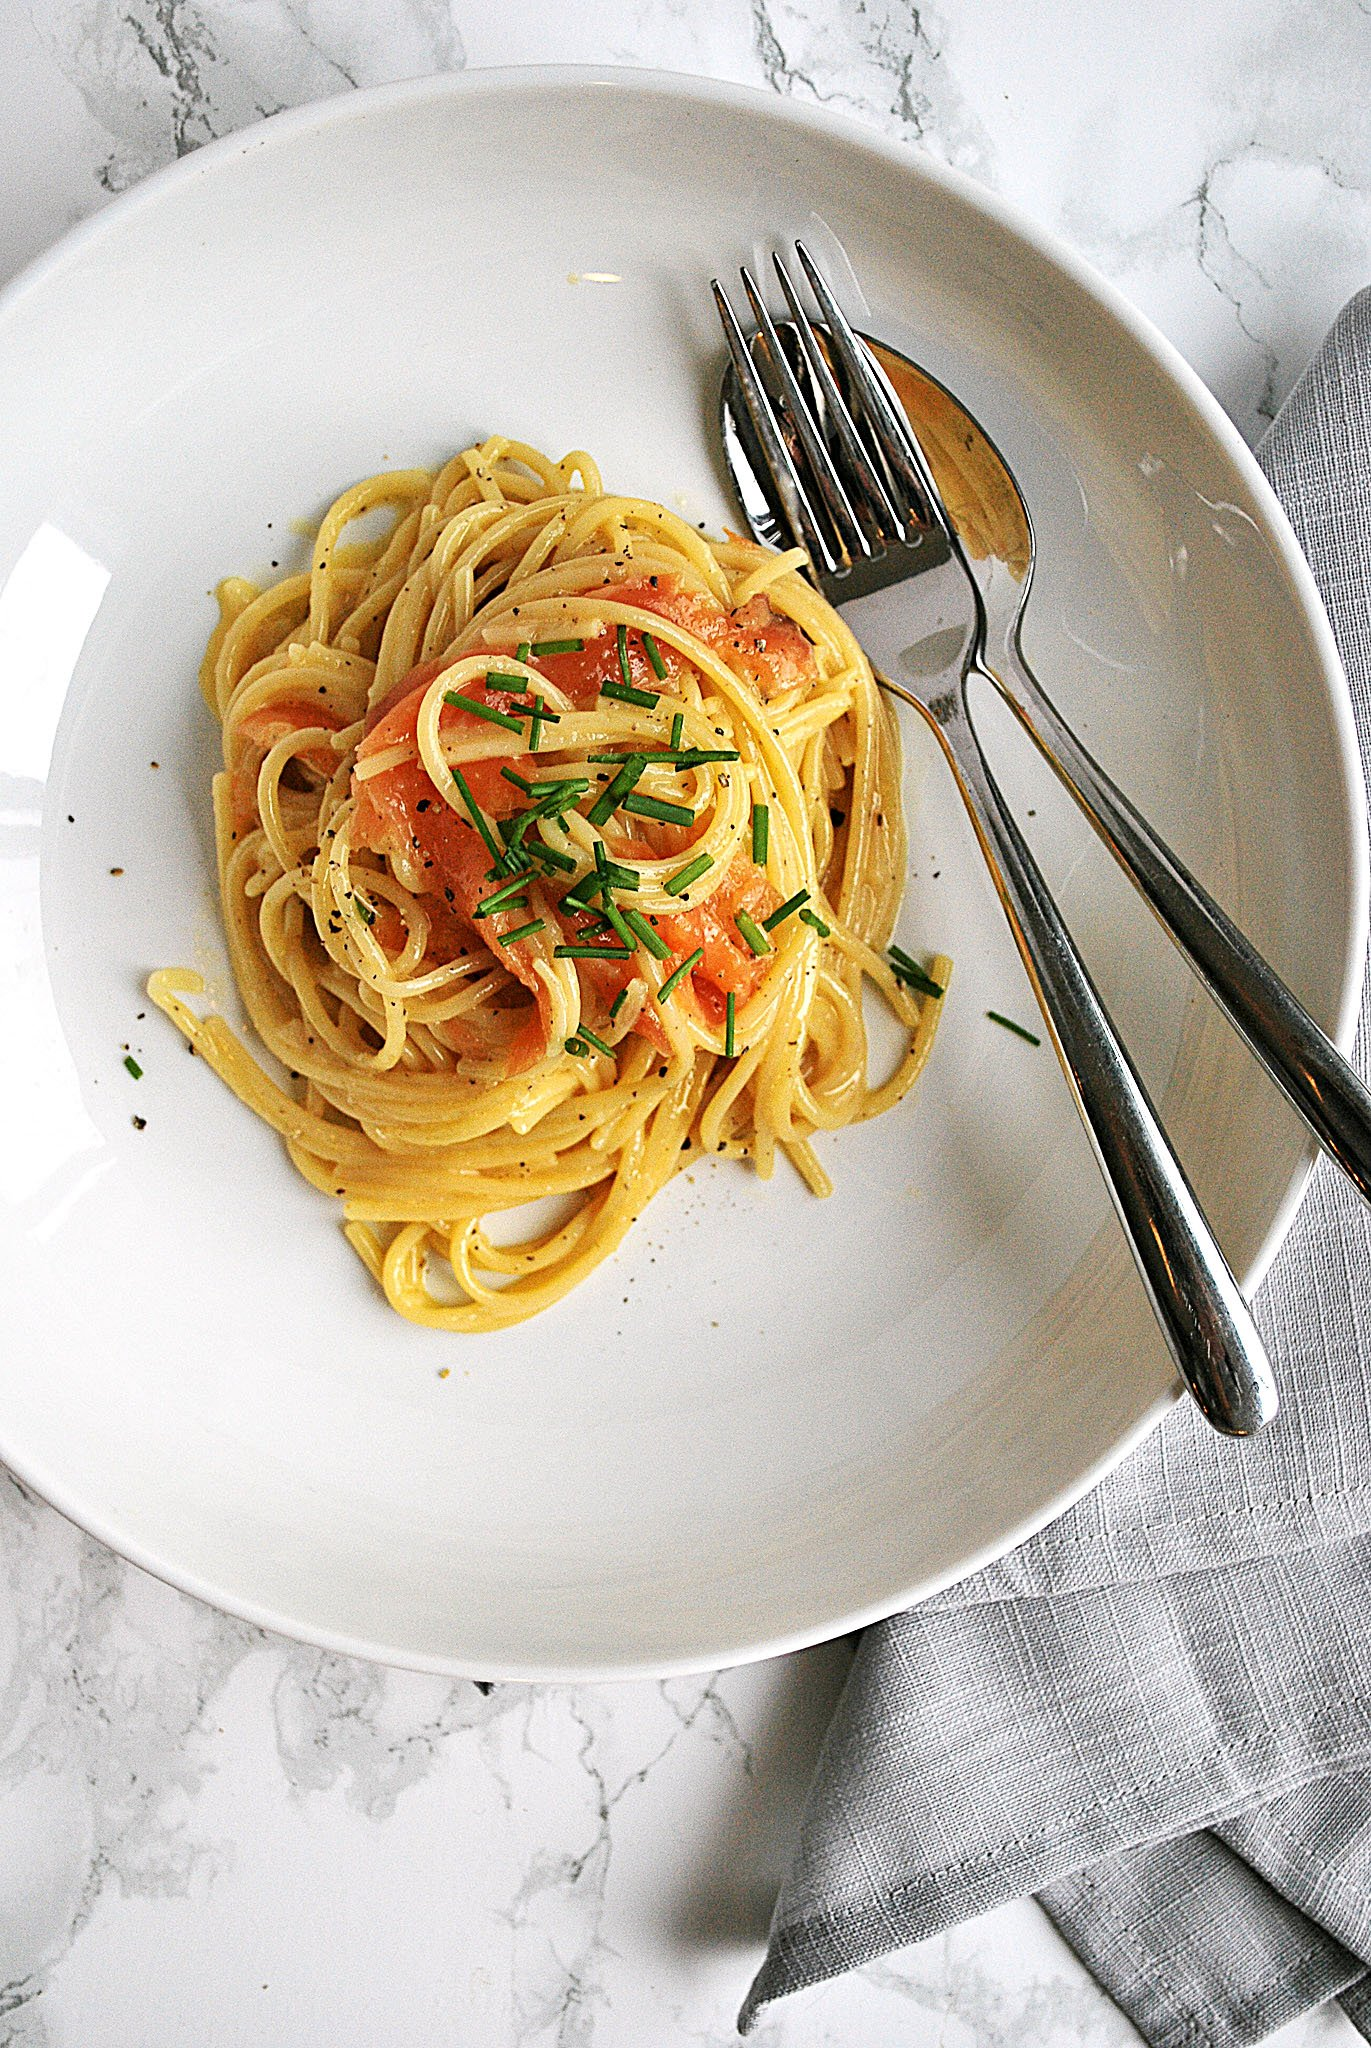 A plate with creamy smoked salmon spaghetti carbonara beside a napkin and cutlery.